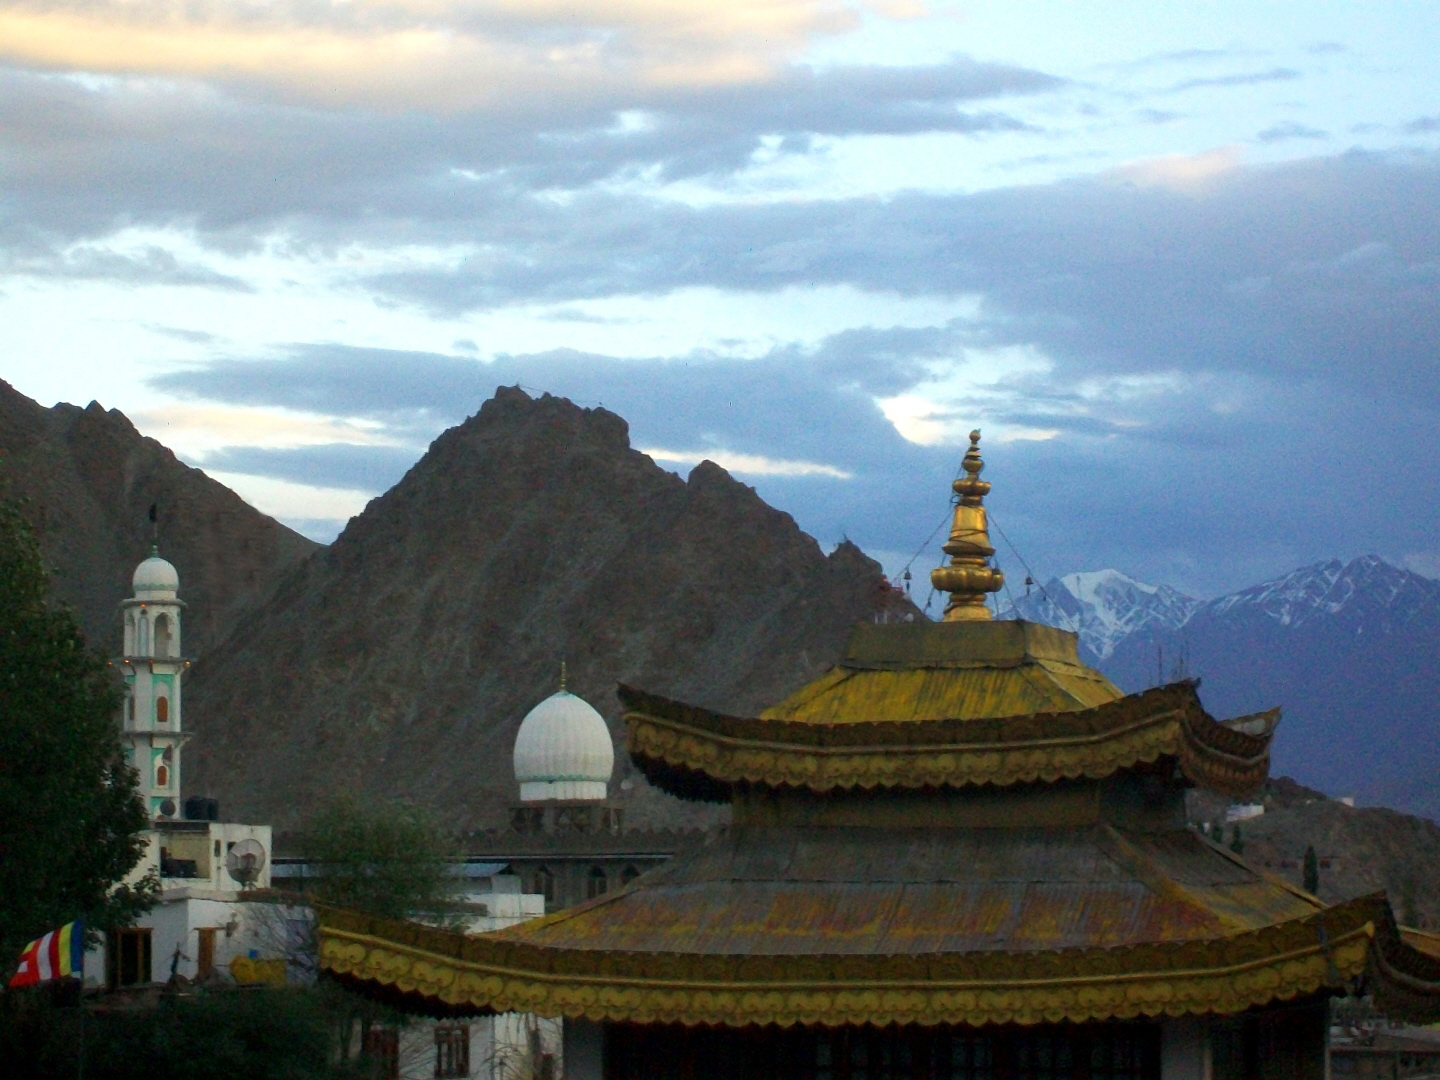 Top of Stupa, Dome & Minaret of Mosque - Ley, Ladakh - Himalaya Mountains